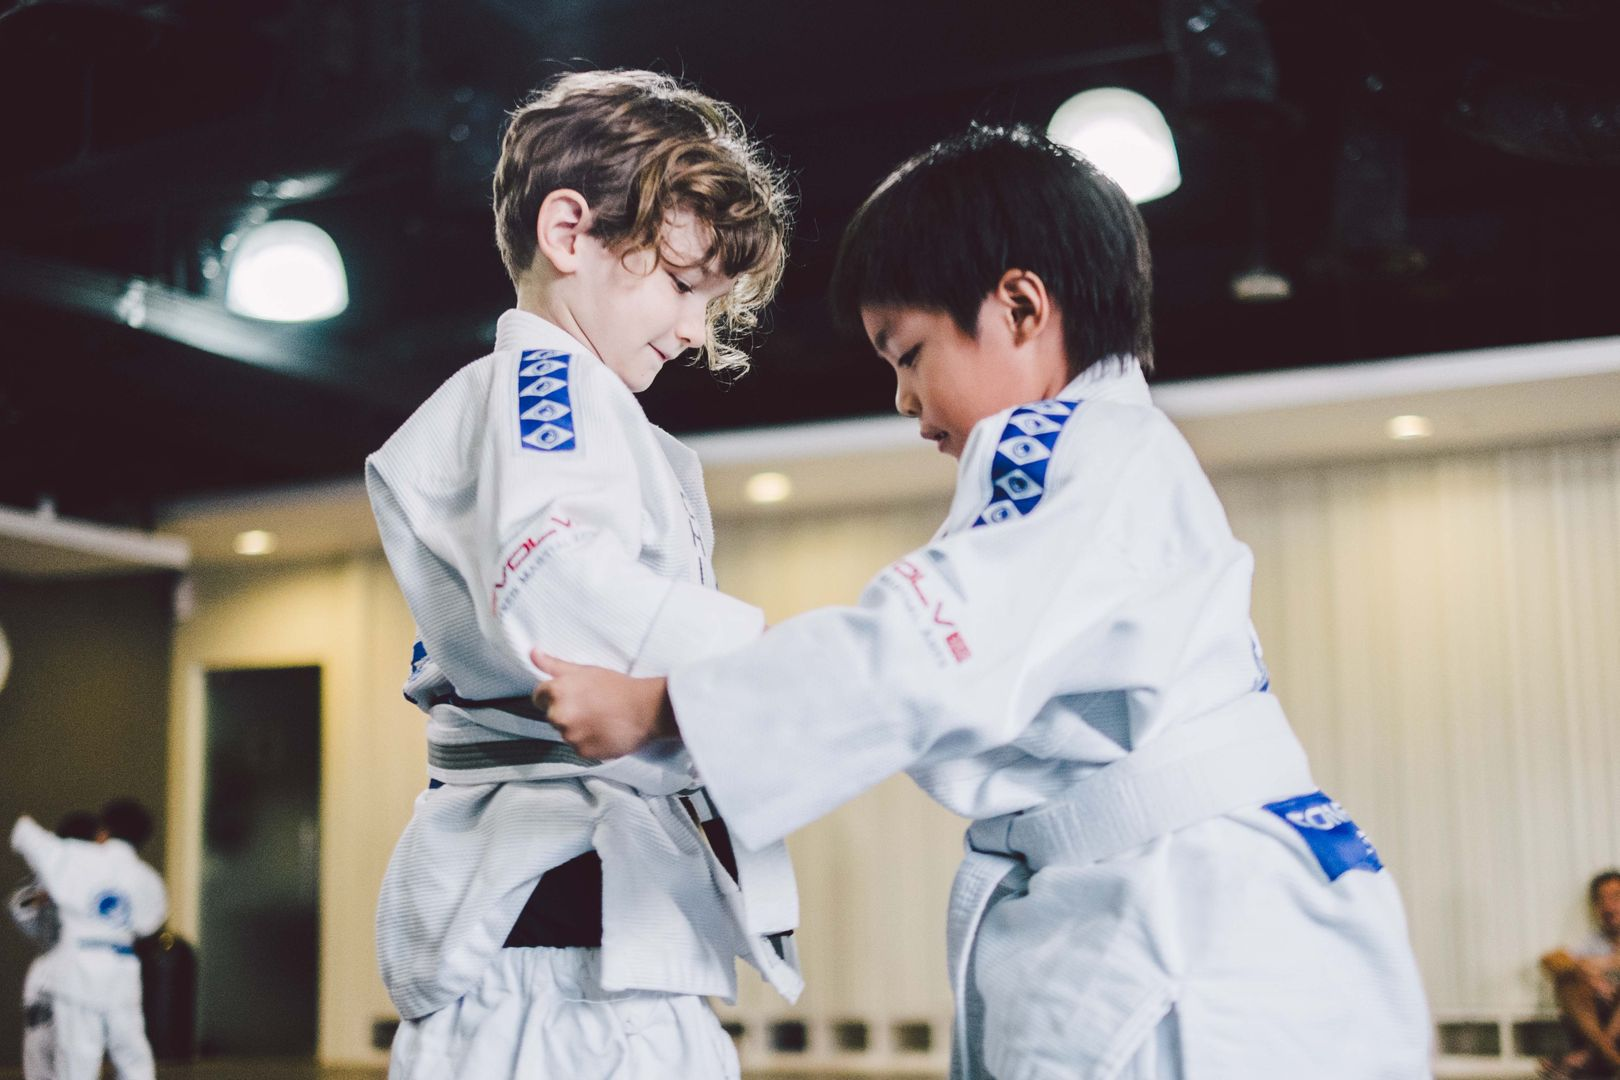 Keep your kids active by letting them train BJJ.